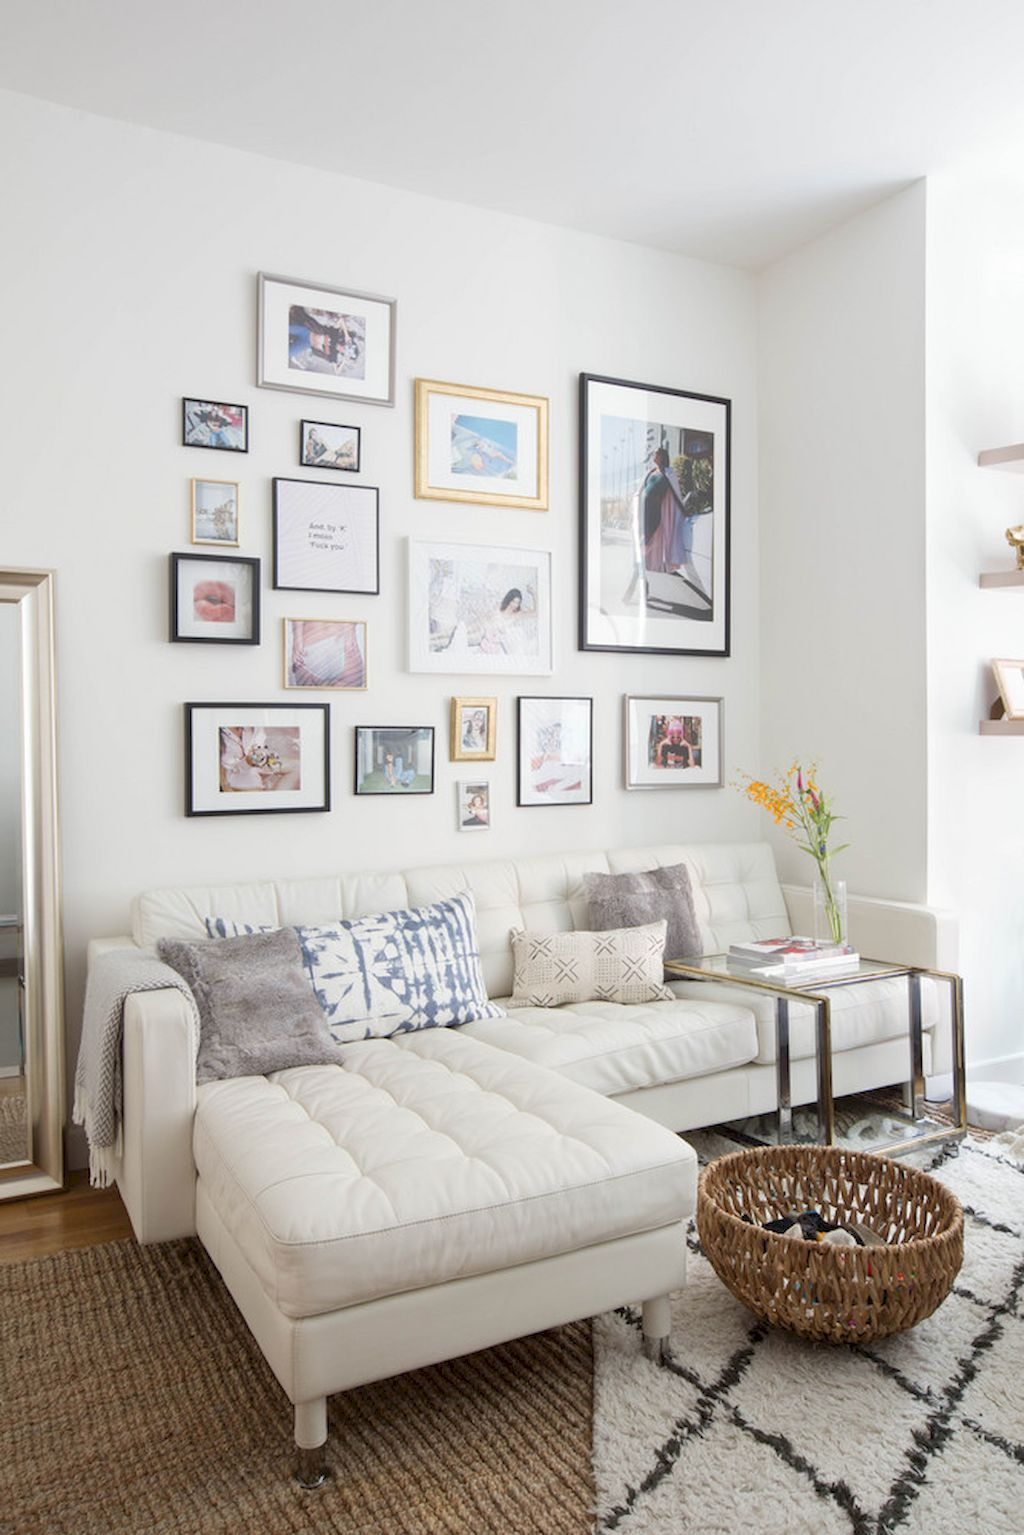 Awesome 95 Cool Apartment Studio Decorating Ideas on A Budget https ...